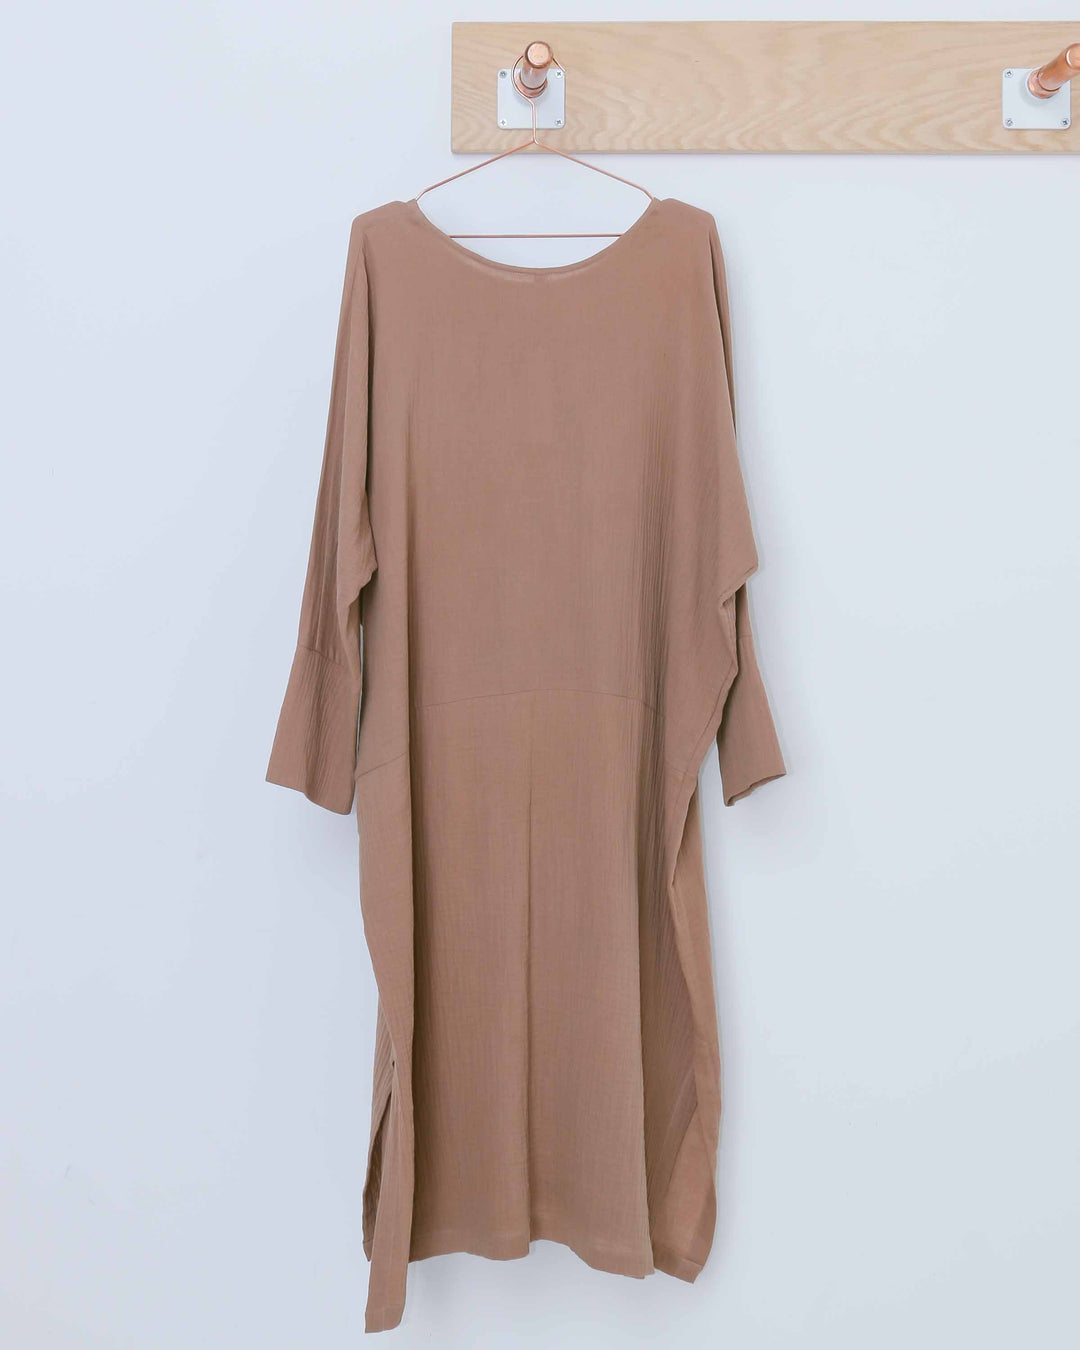 Textured Dolman Sleeve Dress